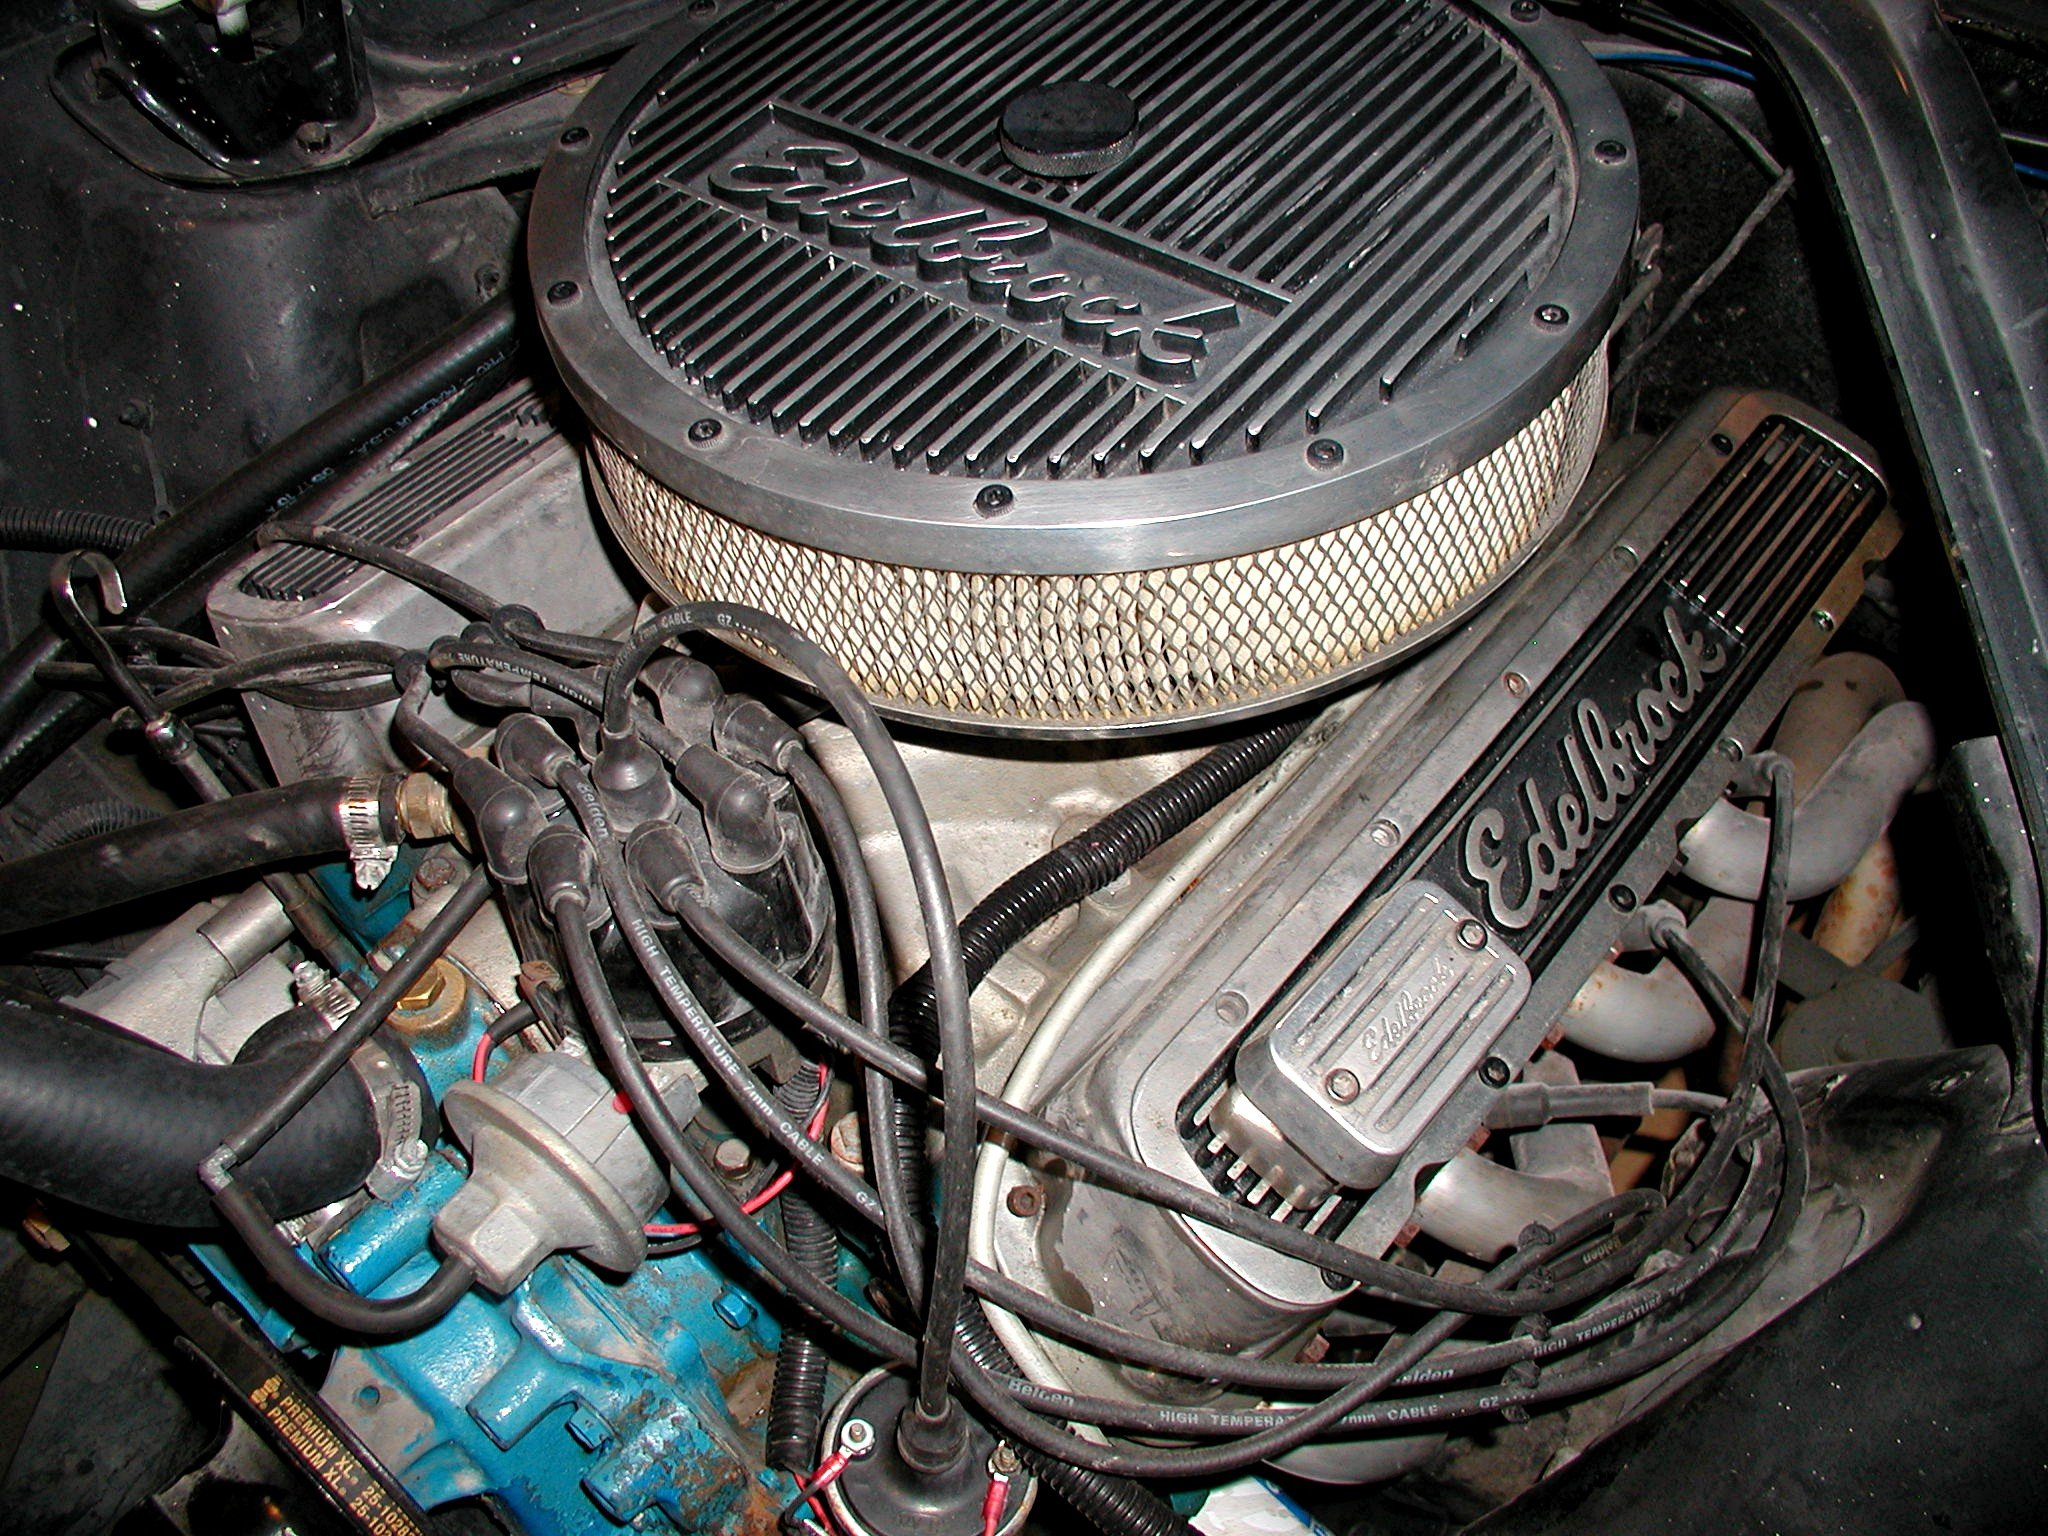 similiar ford 289 engine specs keywords ford 289 specs ford 289 engine specs